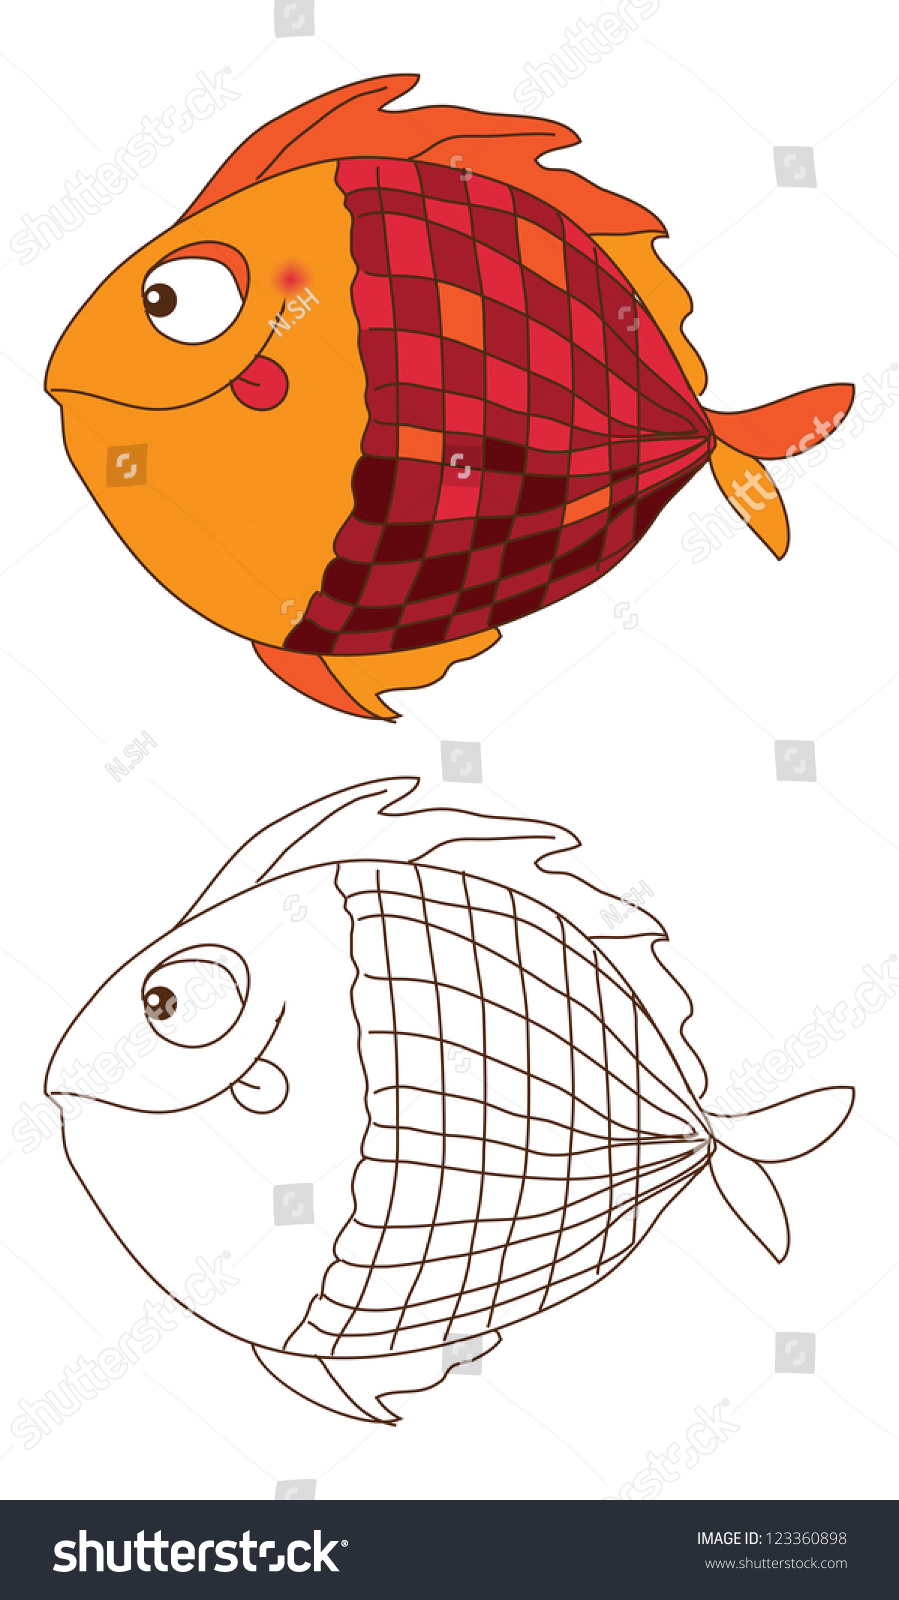 Sketch Cute Fish Color Outline Stock Vector (2018) 123360898 ...